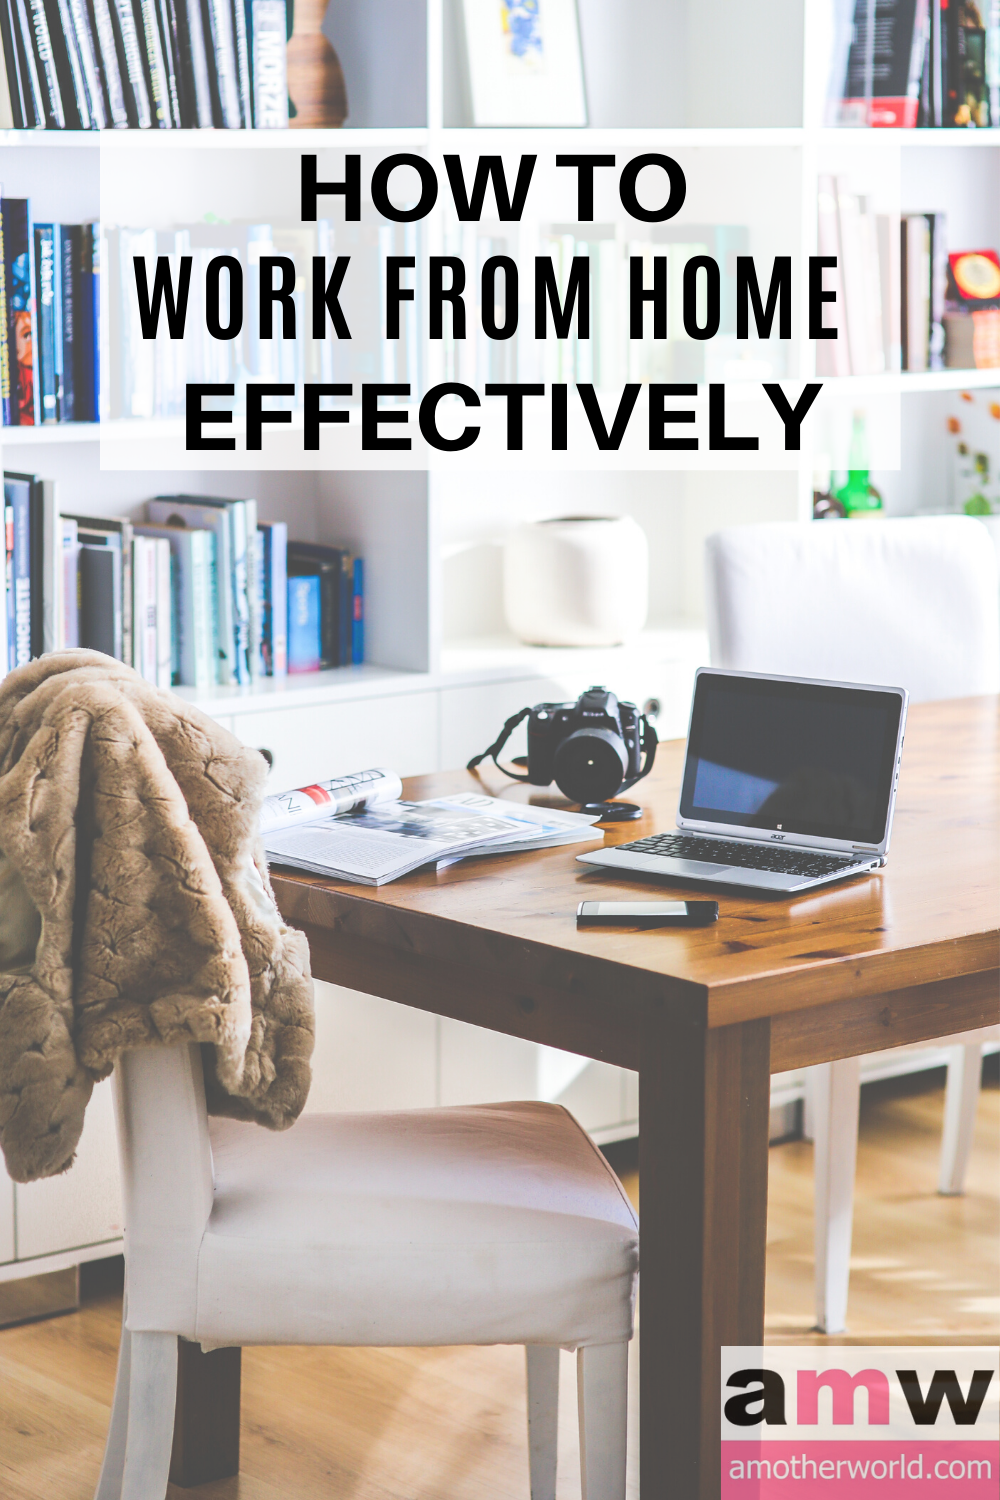 How to Work From Home Effectively | amotherworld.com